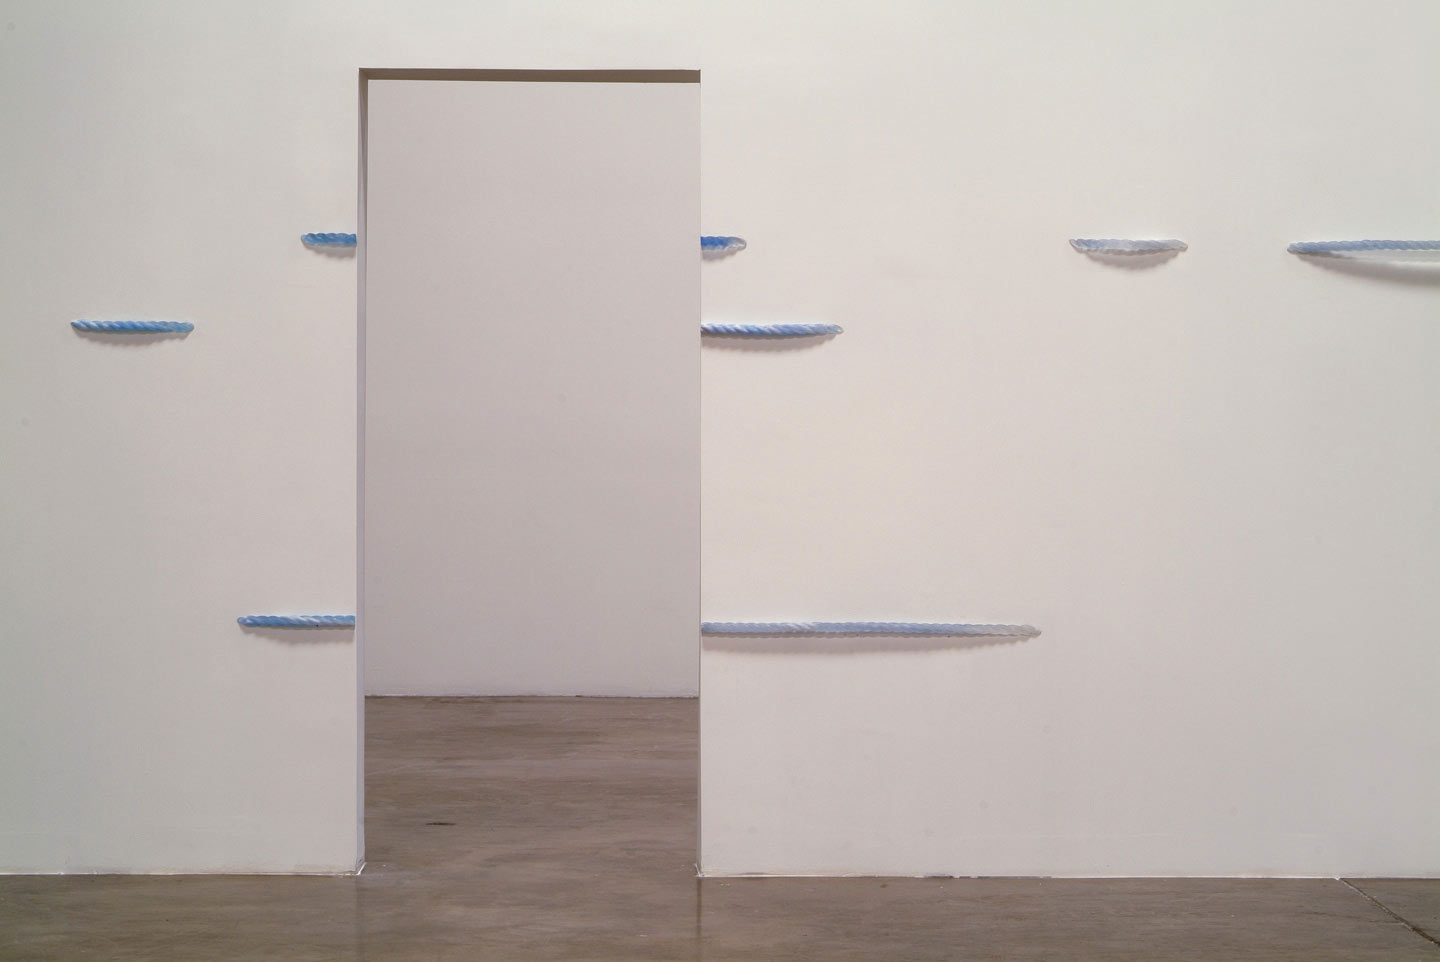 Installation view,  Out of the Blue ,solo exhibition at Shoshana Wayne Gallery, CA, 2004.